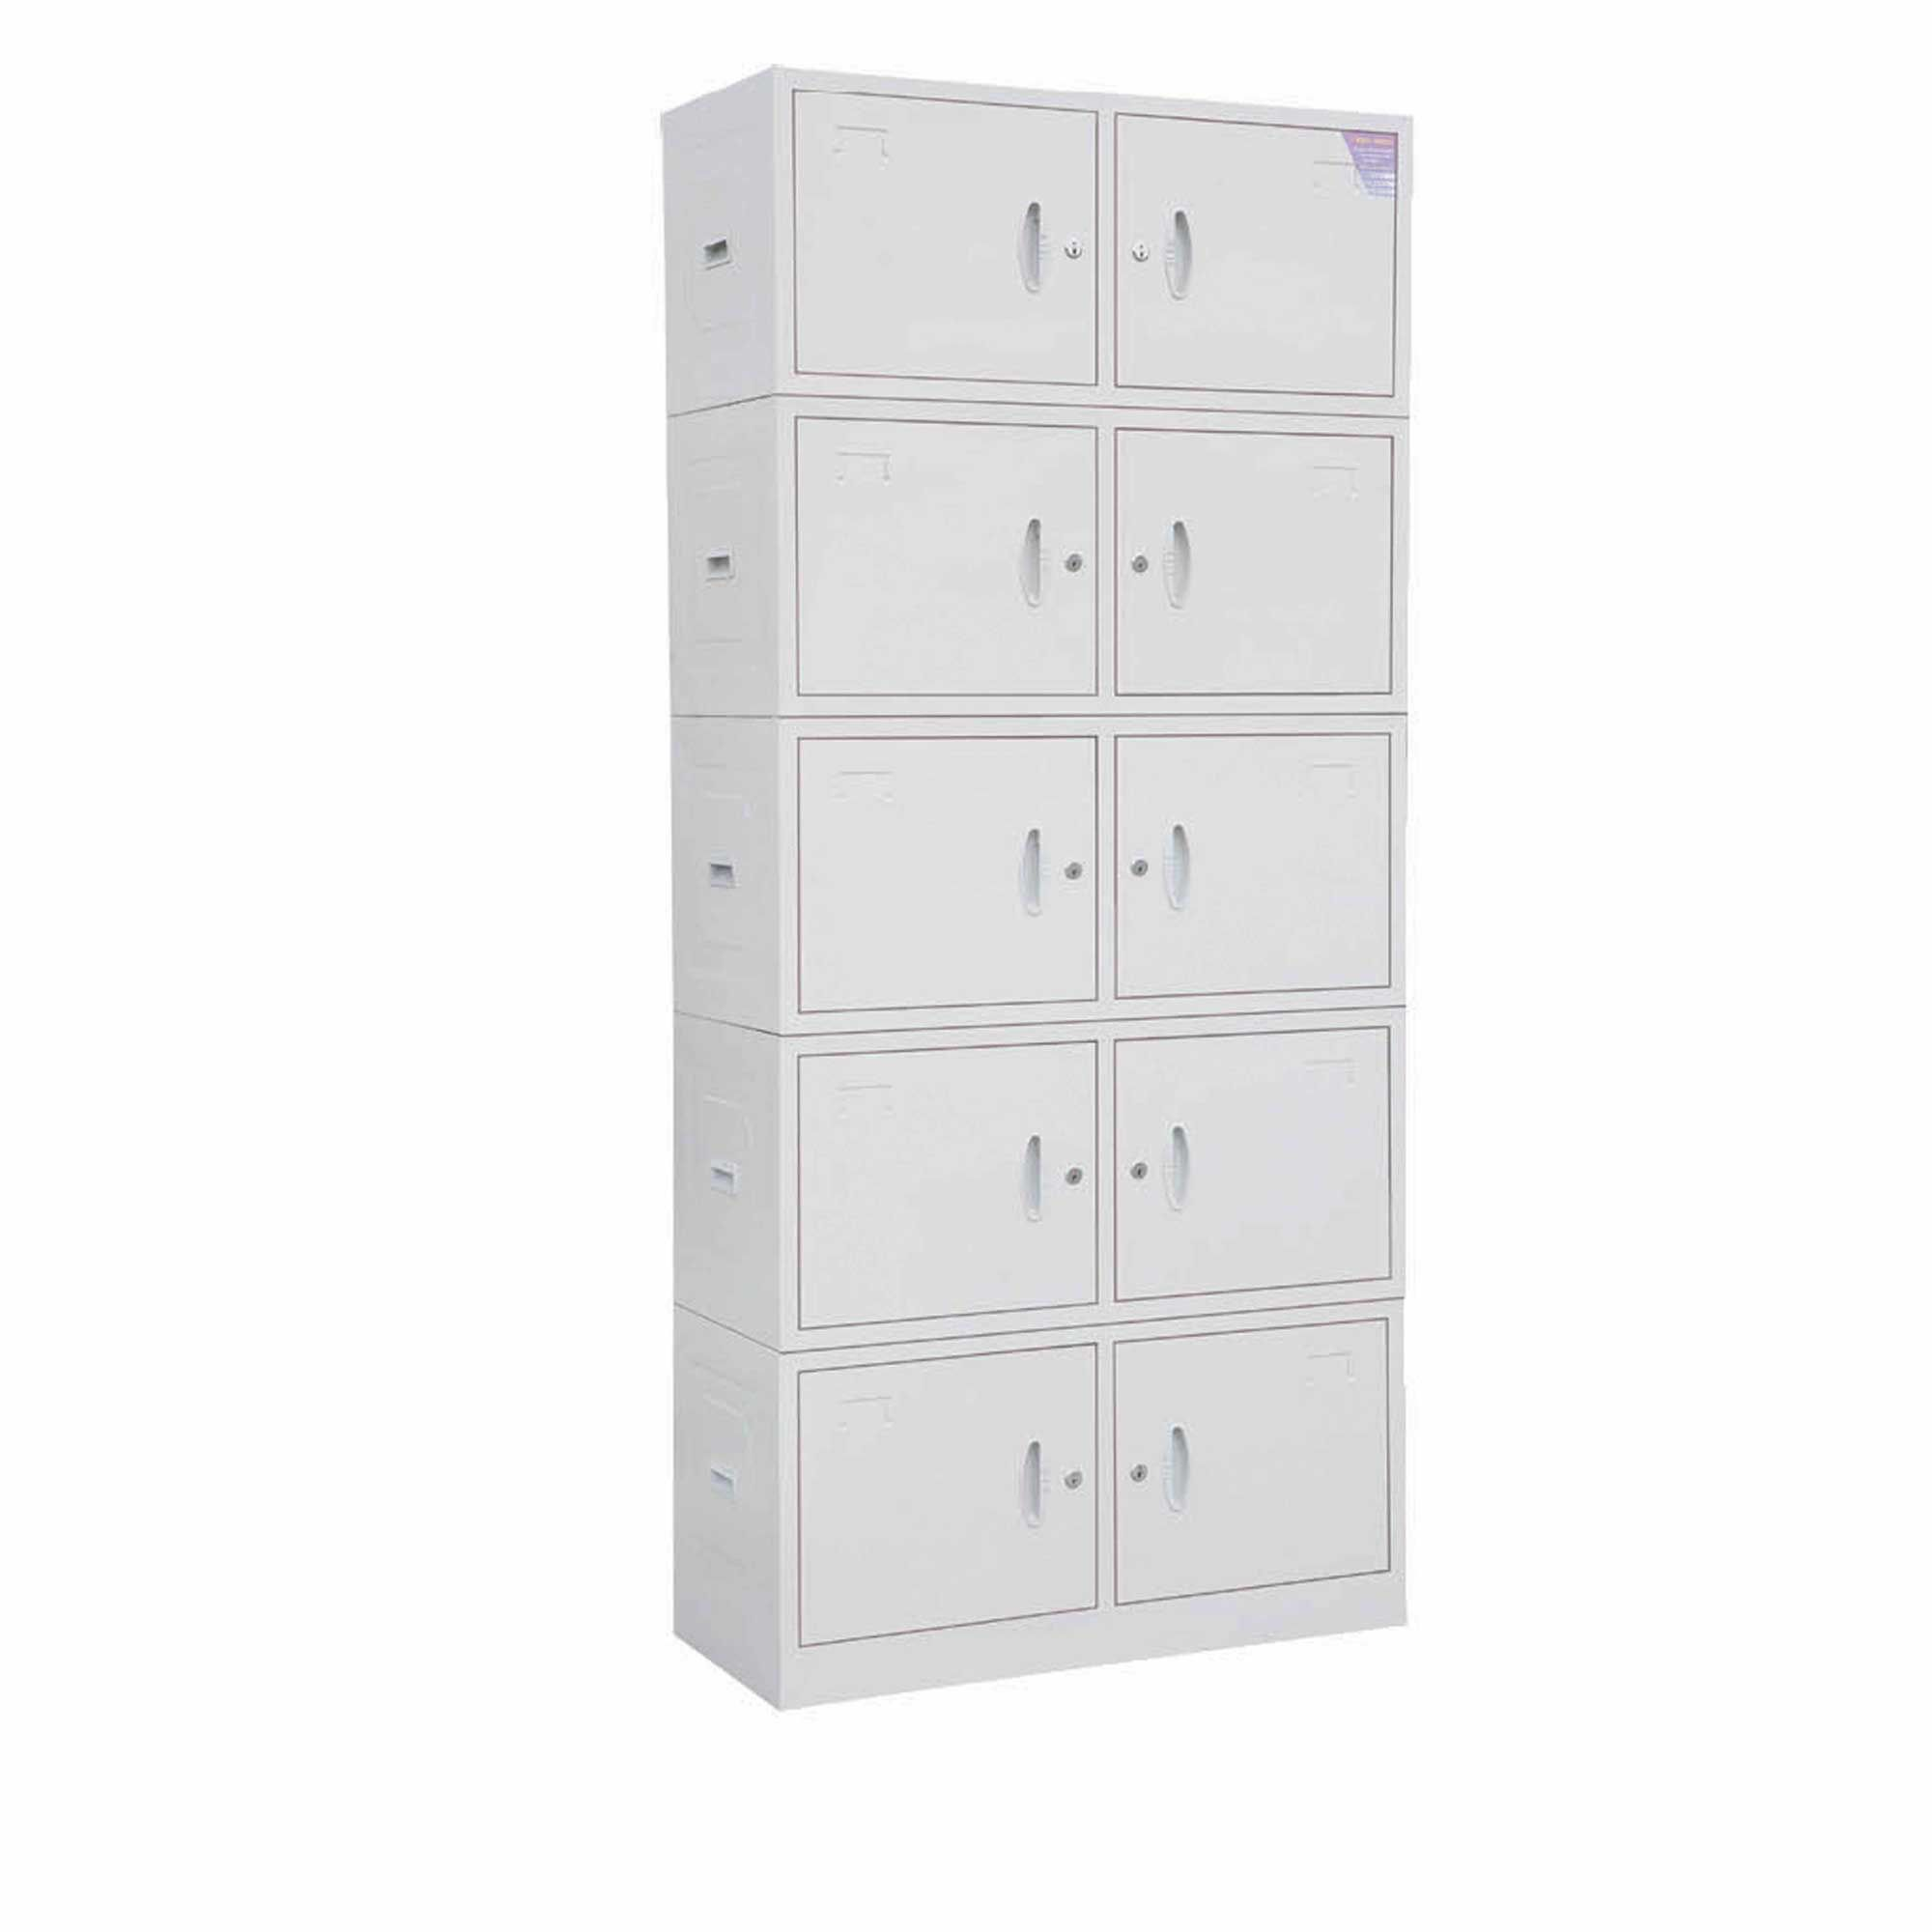 White Stainless Steel Filing Cabinet